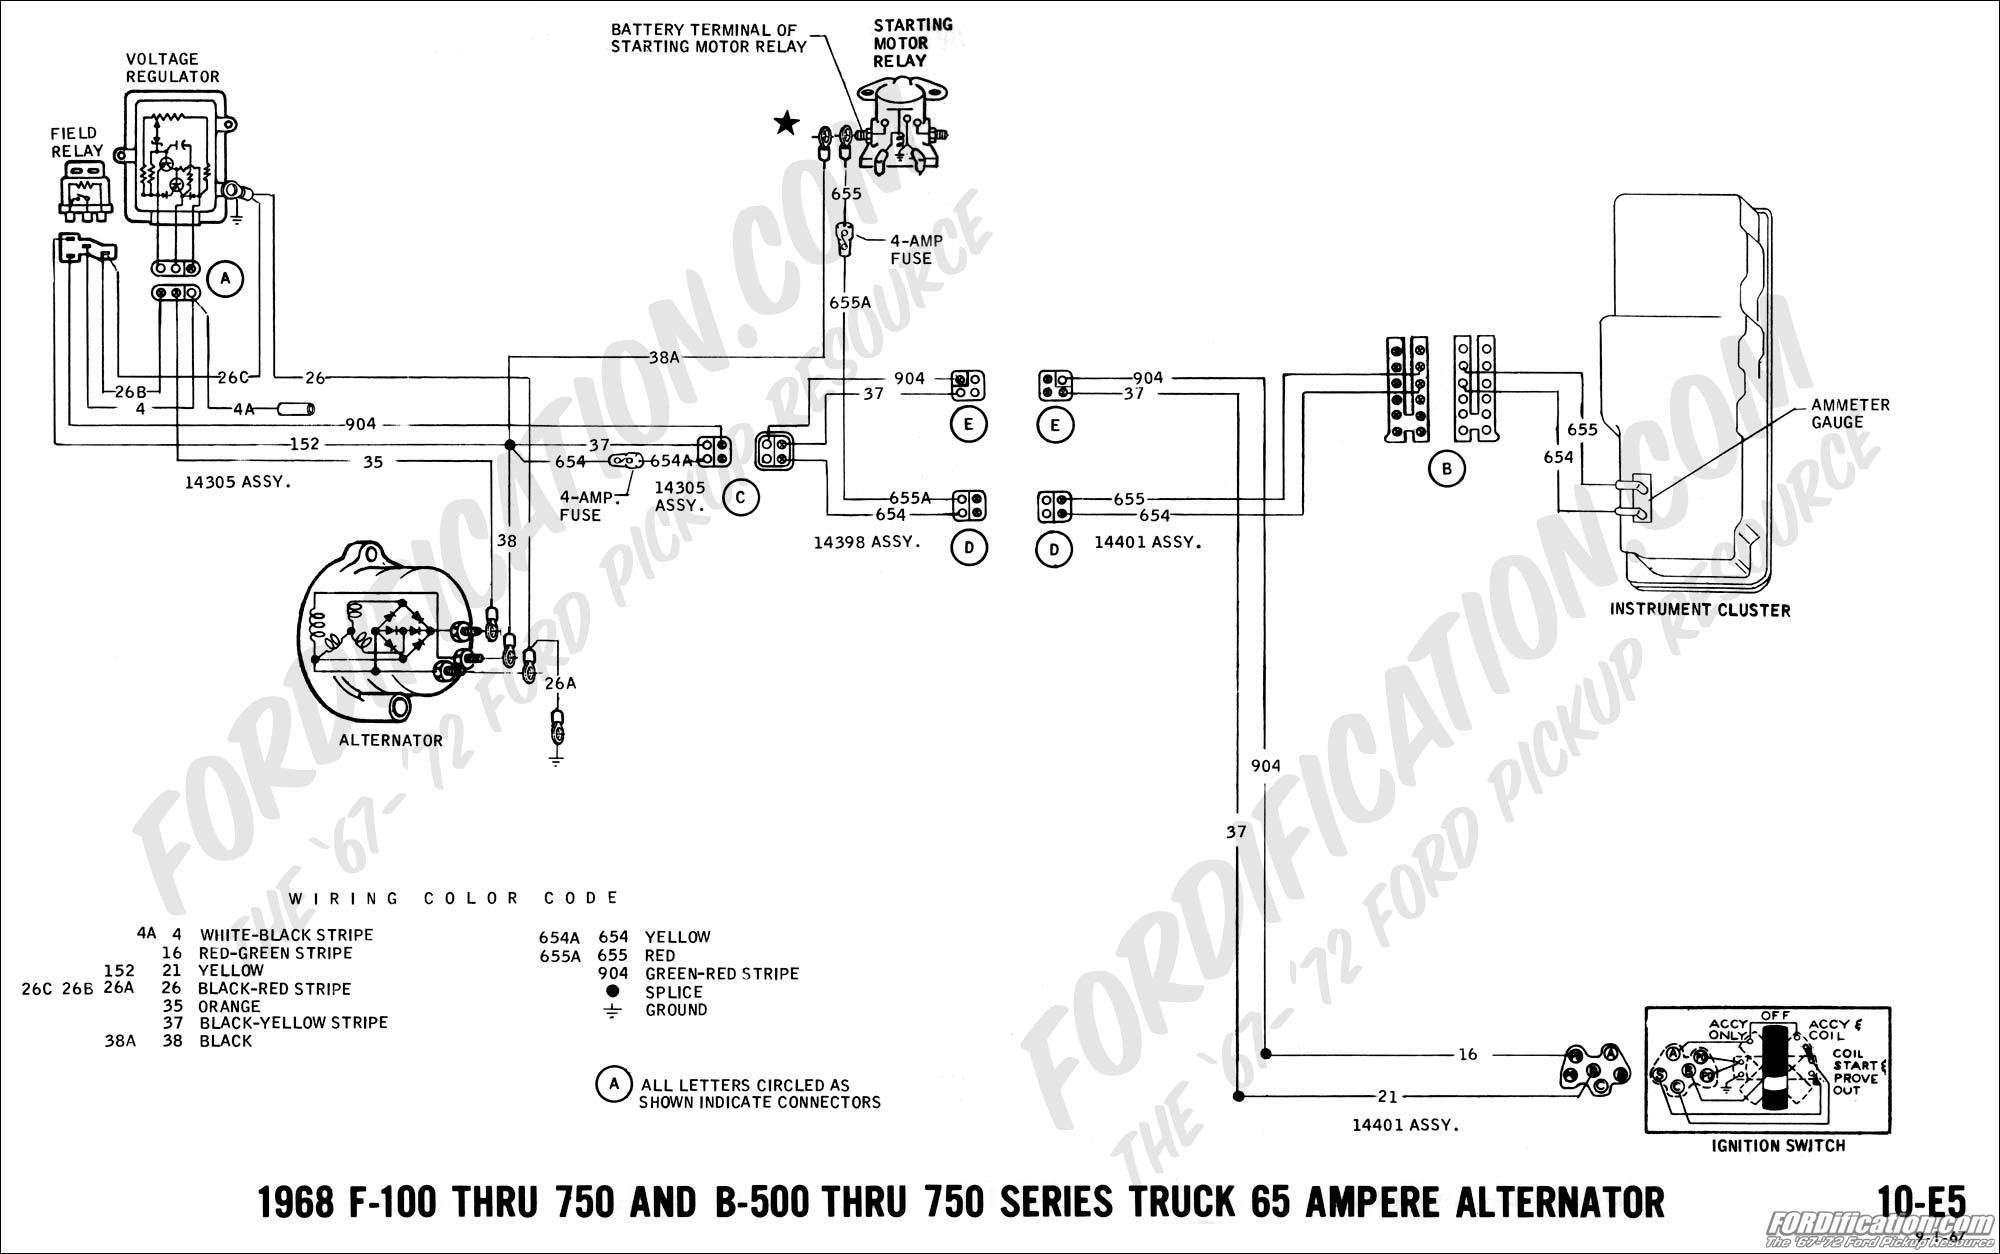 Harley Davidson Voltage Regulator Wiring Diagram from annawiringdiagram.com